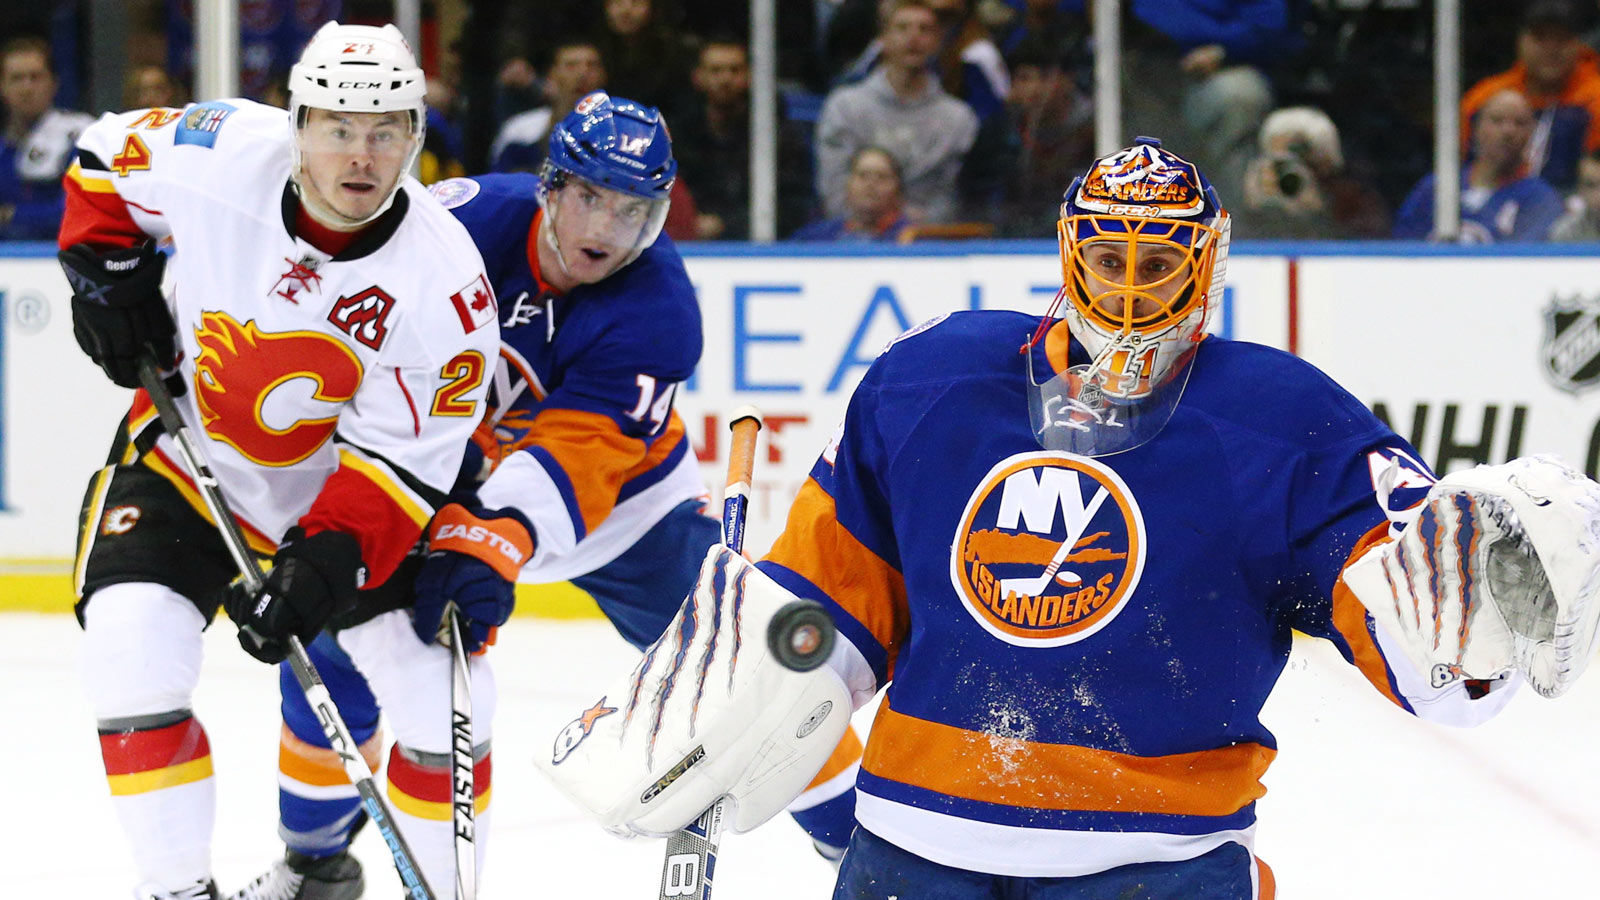 Islanders place goalie Halak on IR, call up replacement